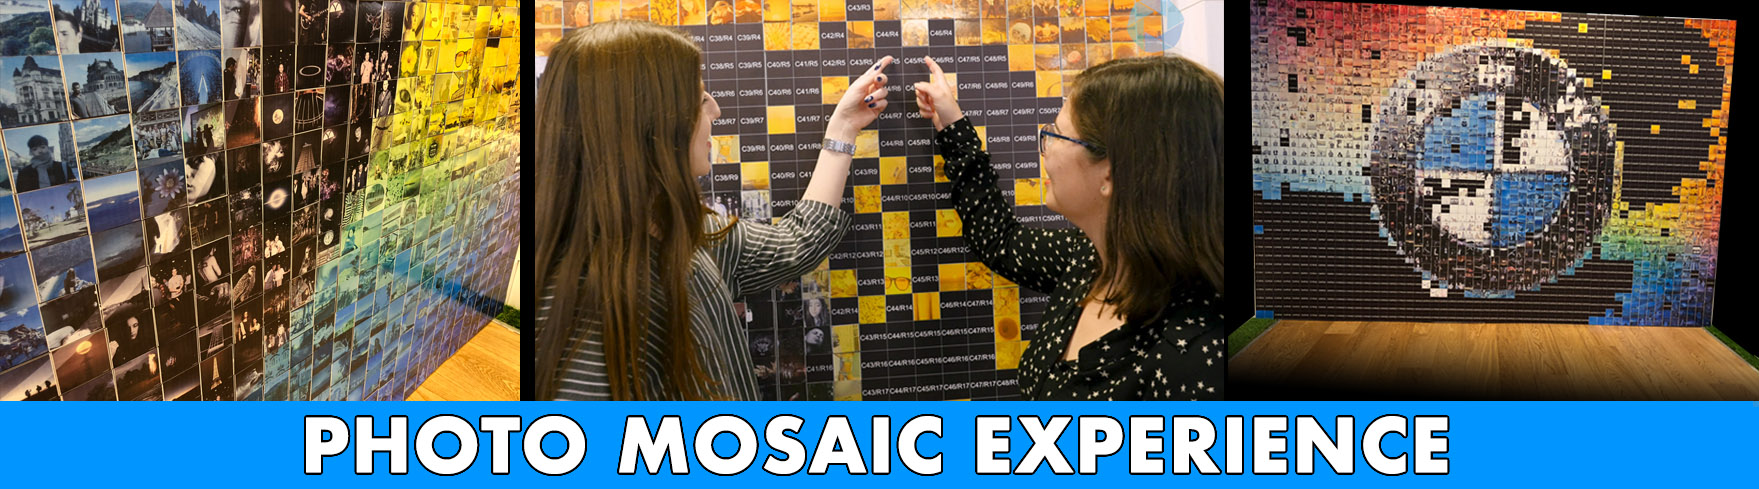 MOSAIC BANNER corporate specials by concha solutions